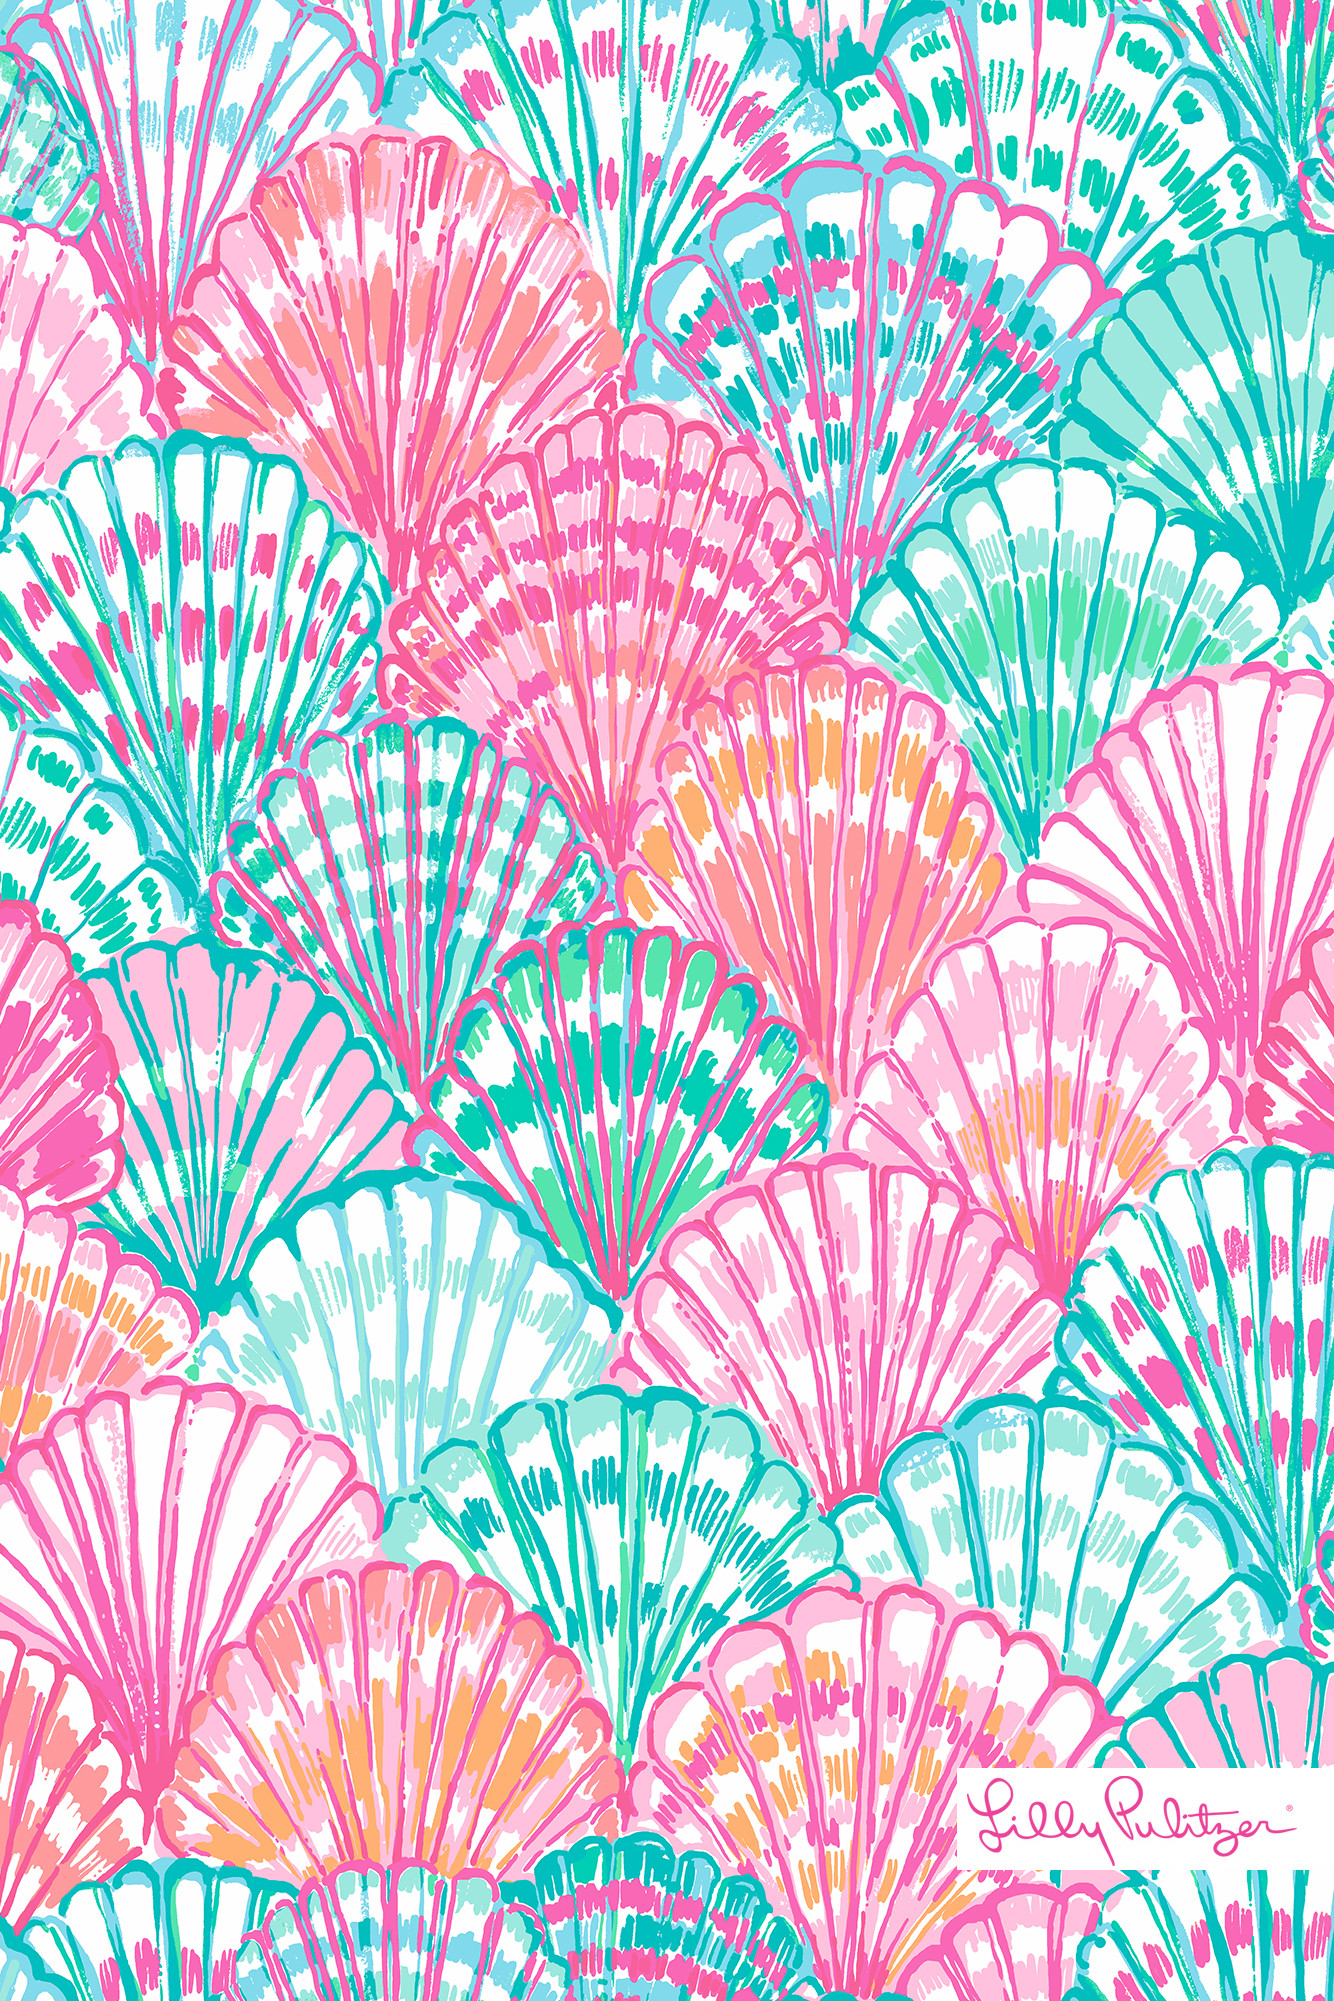 Cute Holographic Wallpapers Mermaid Scales Wallpapers 183 ① Wallpapertag